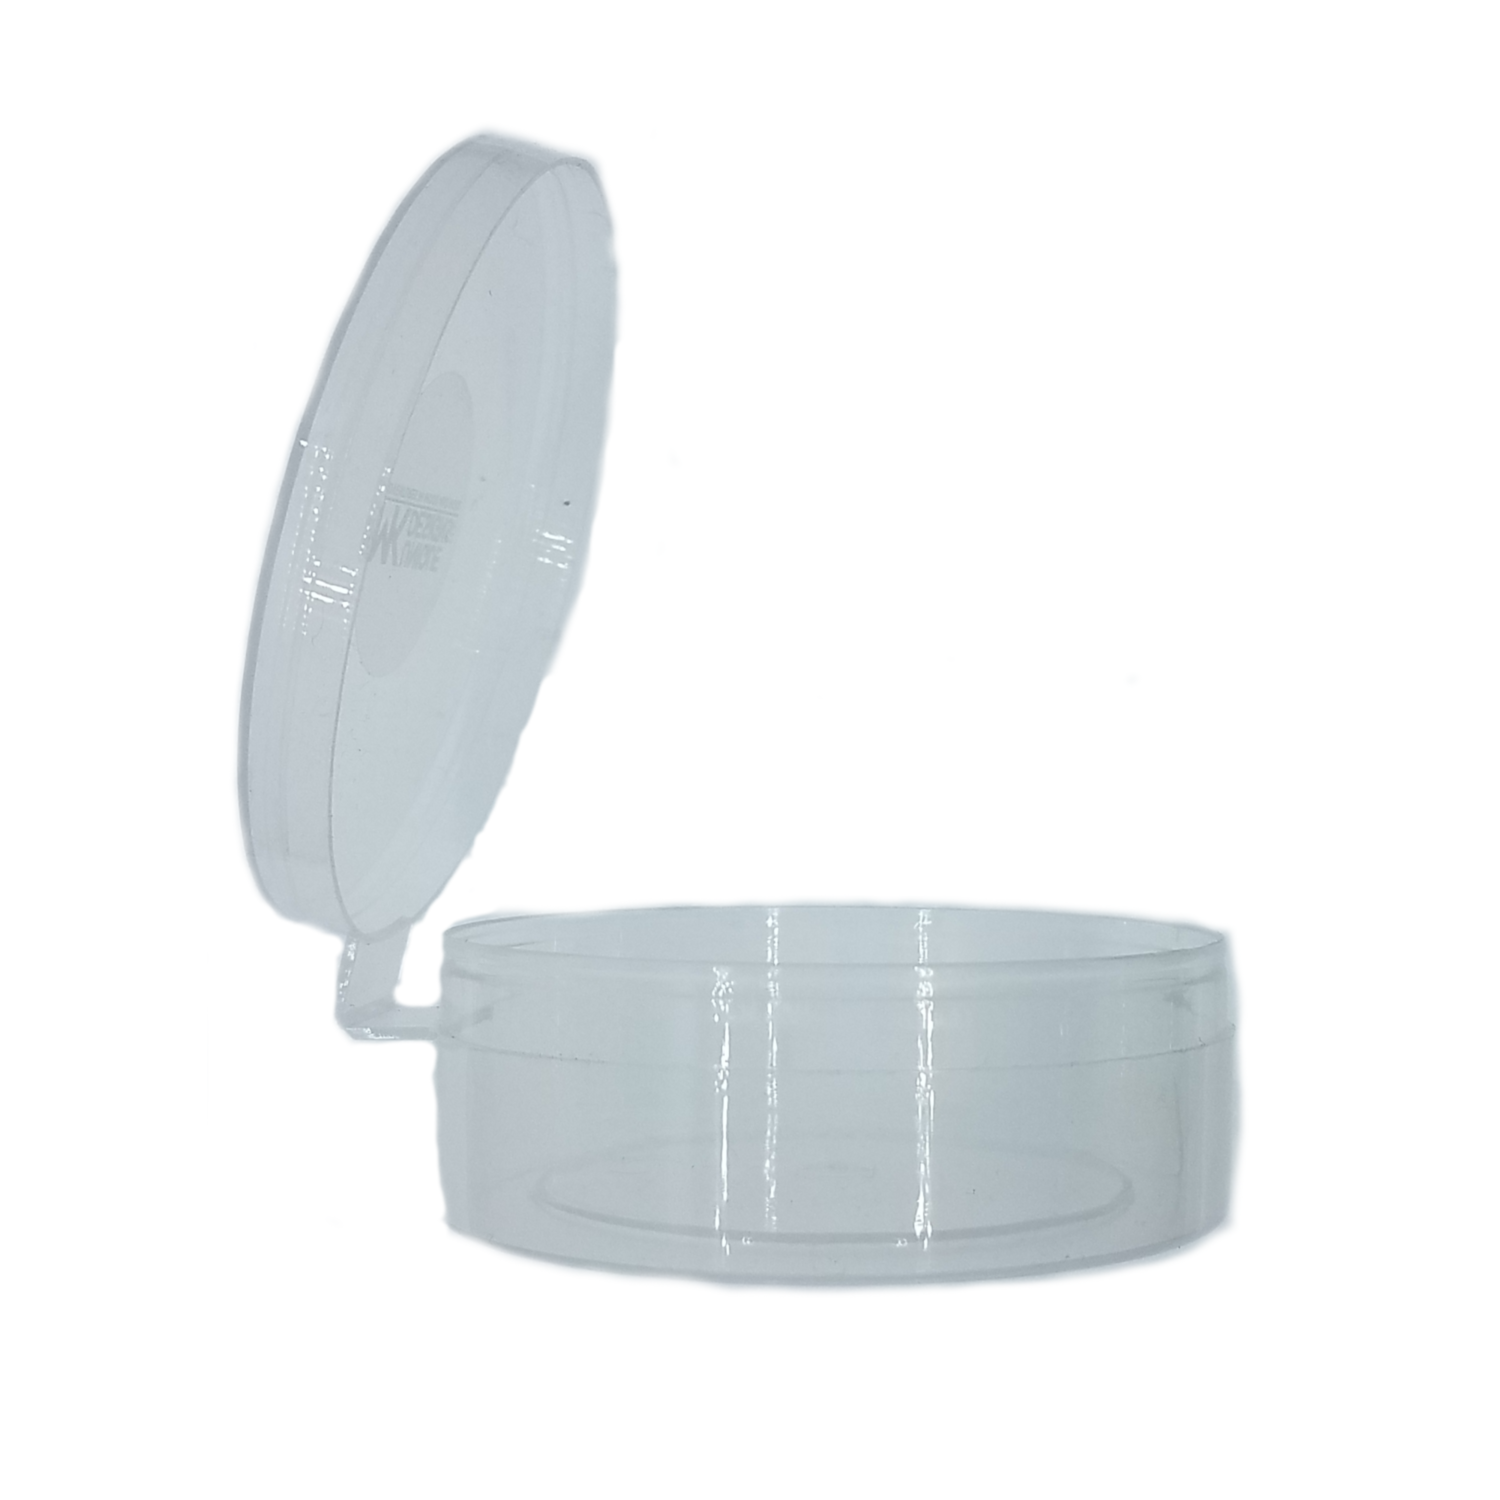 See Through Mouth Call Hinged Lid Case - 25 Pack